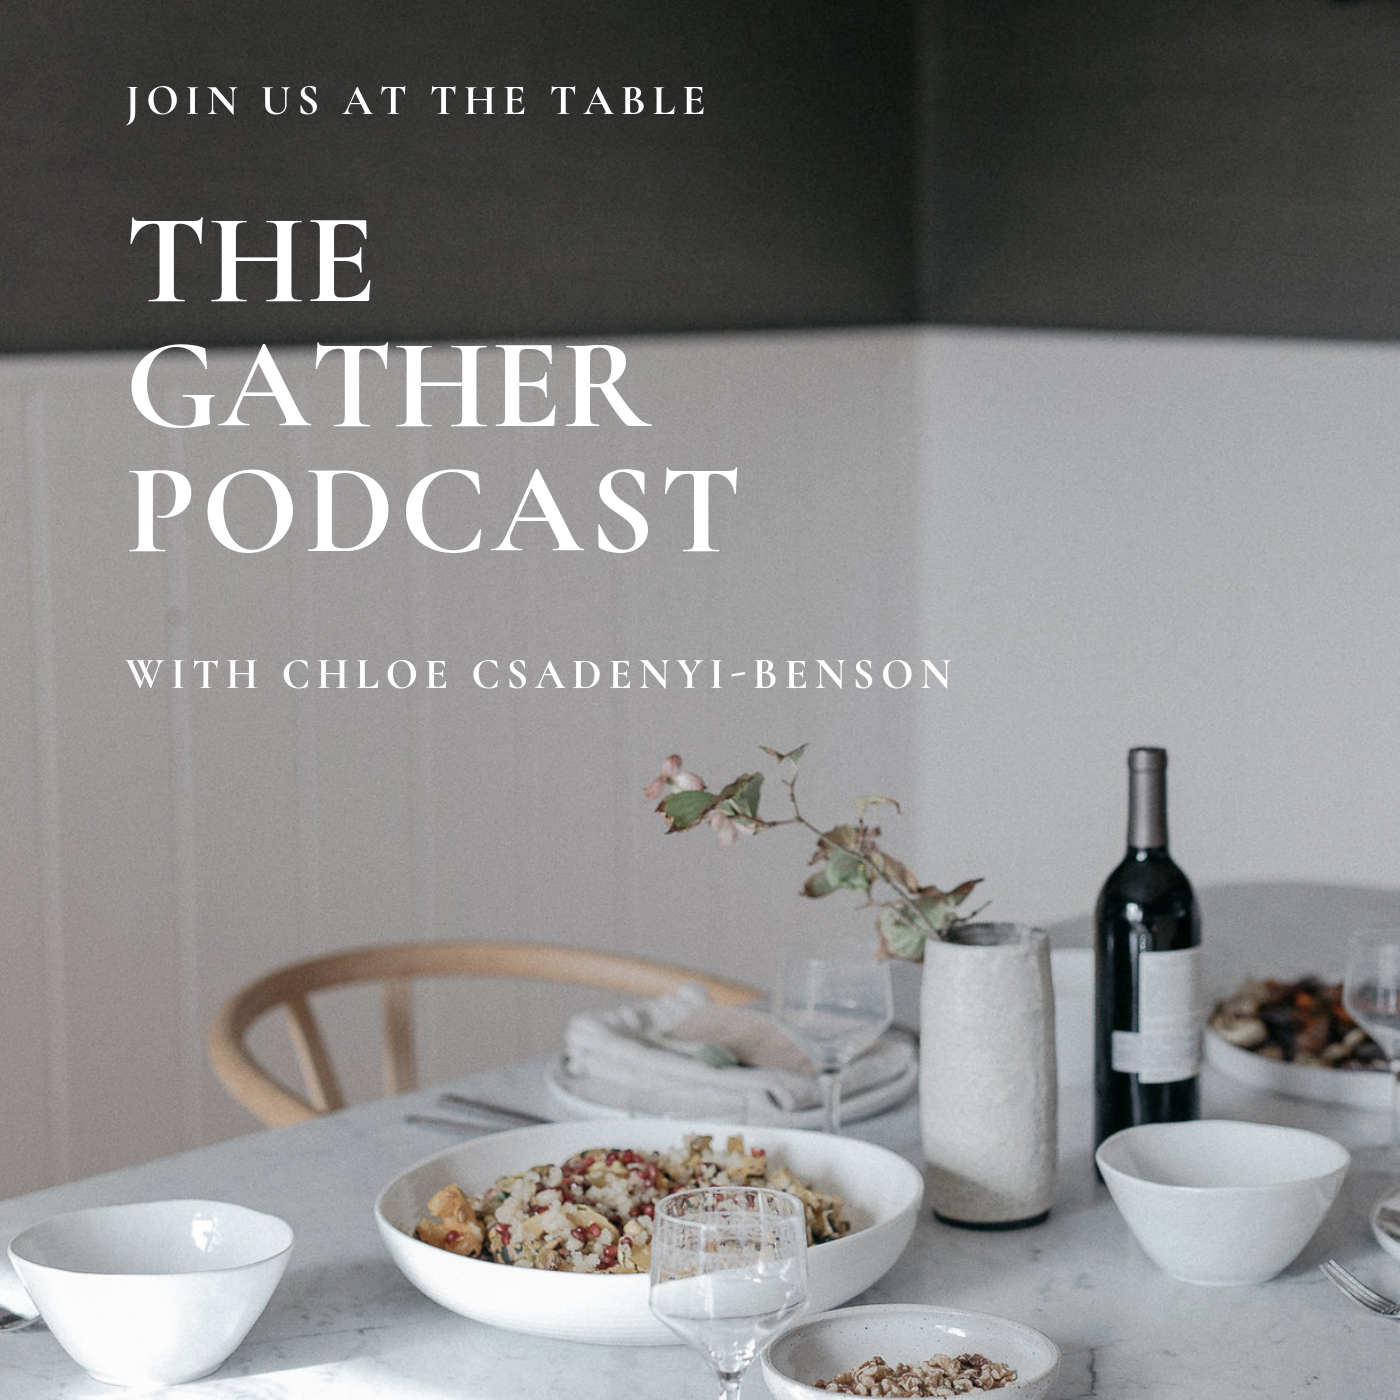 The Gather Podcast